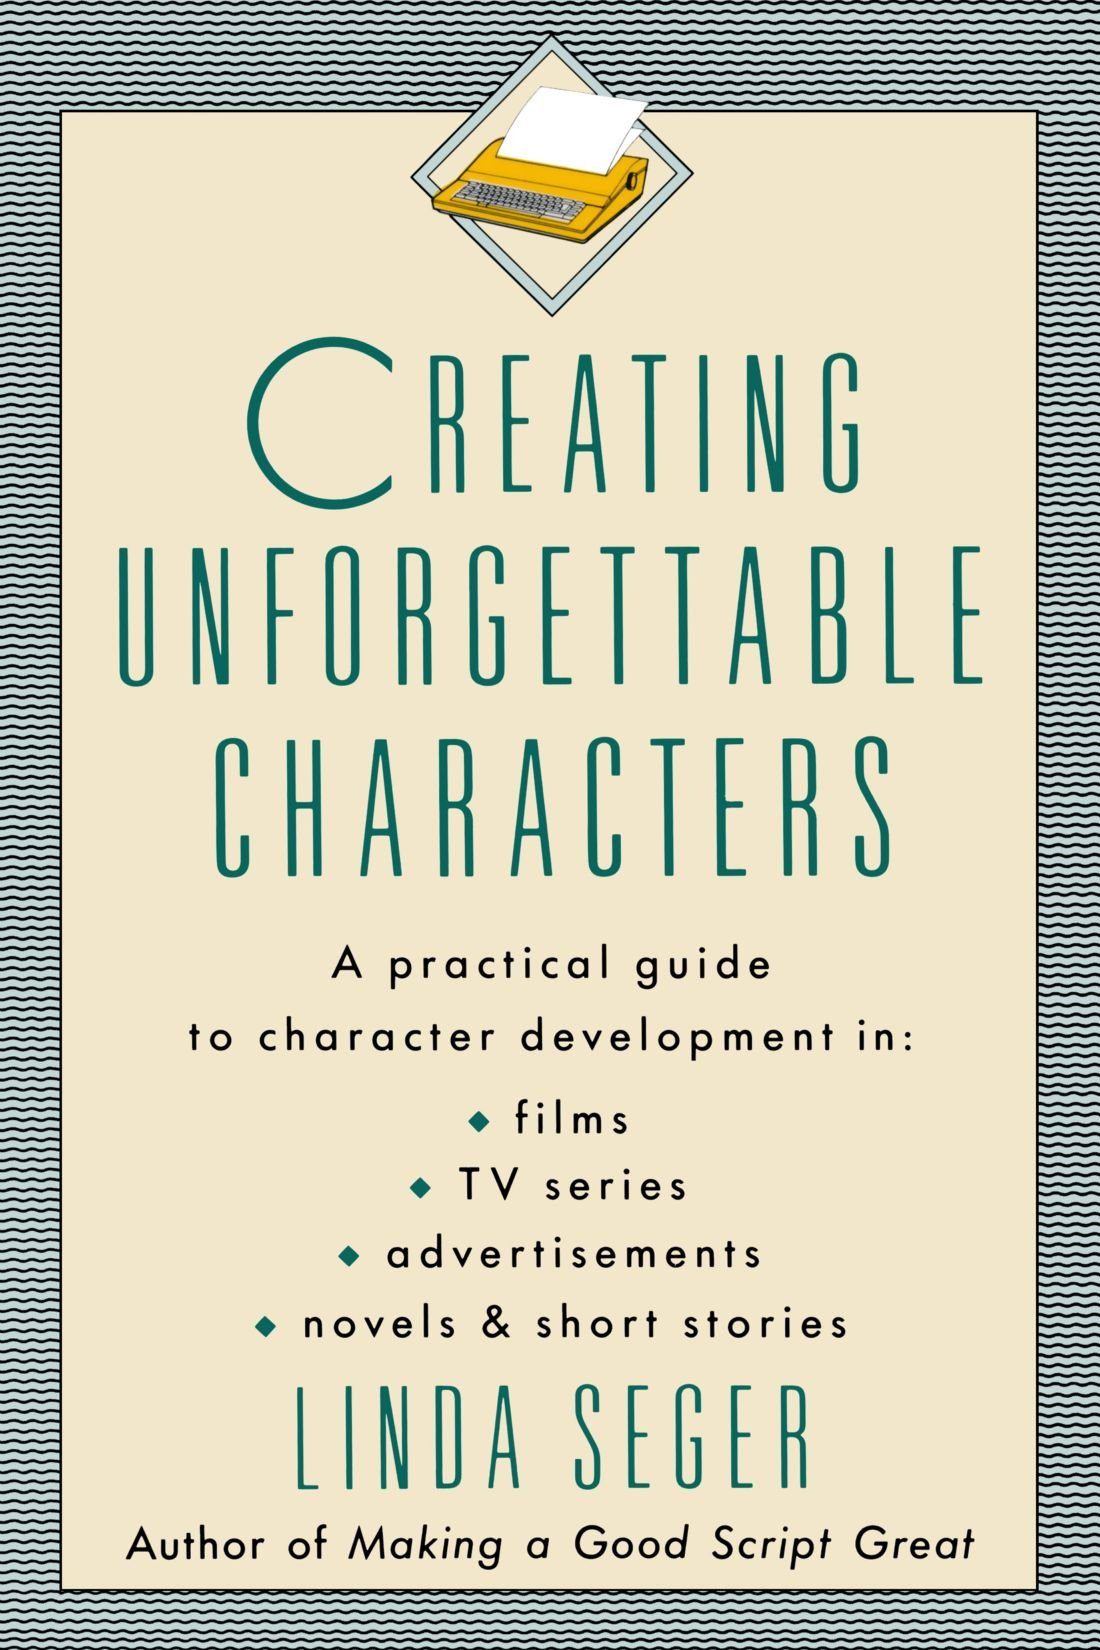 Creating Unforgettable Characters book